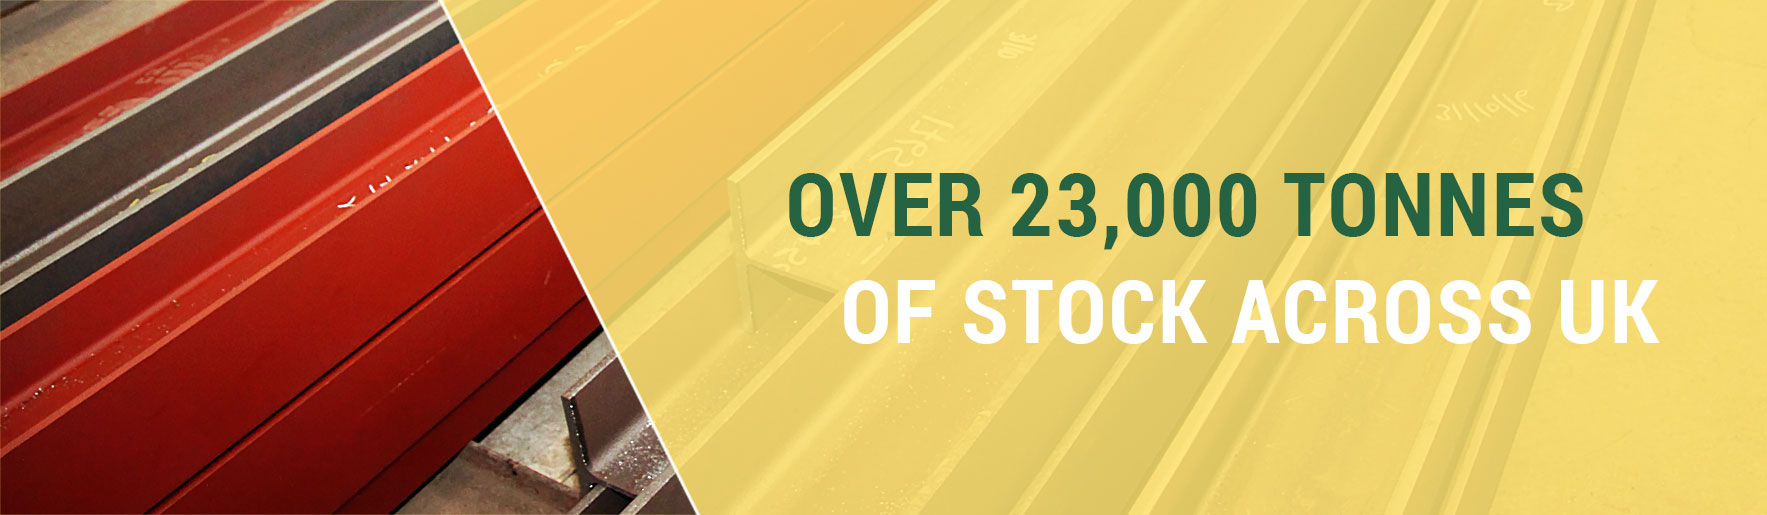 dyfed-steels-stockholder-over-23000-tonnes-of-stock